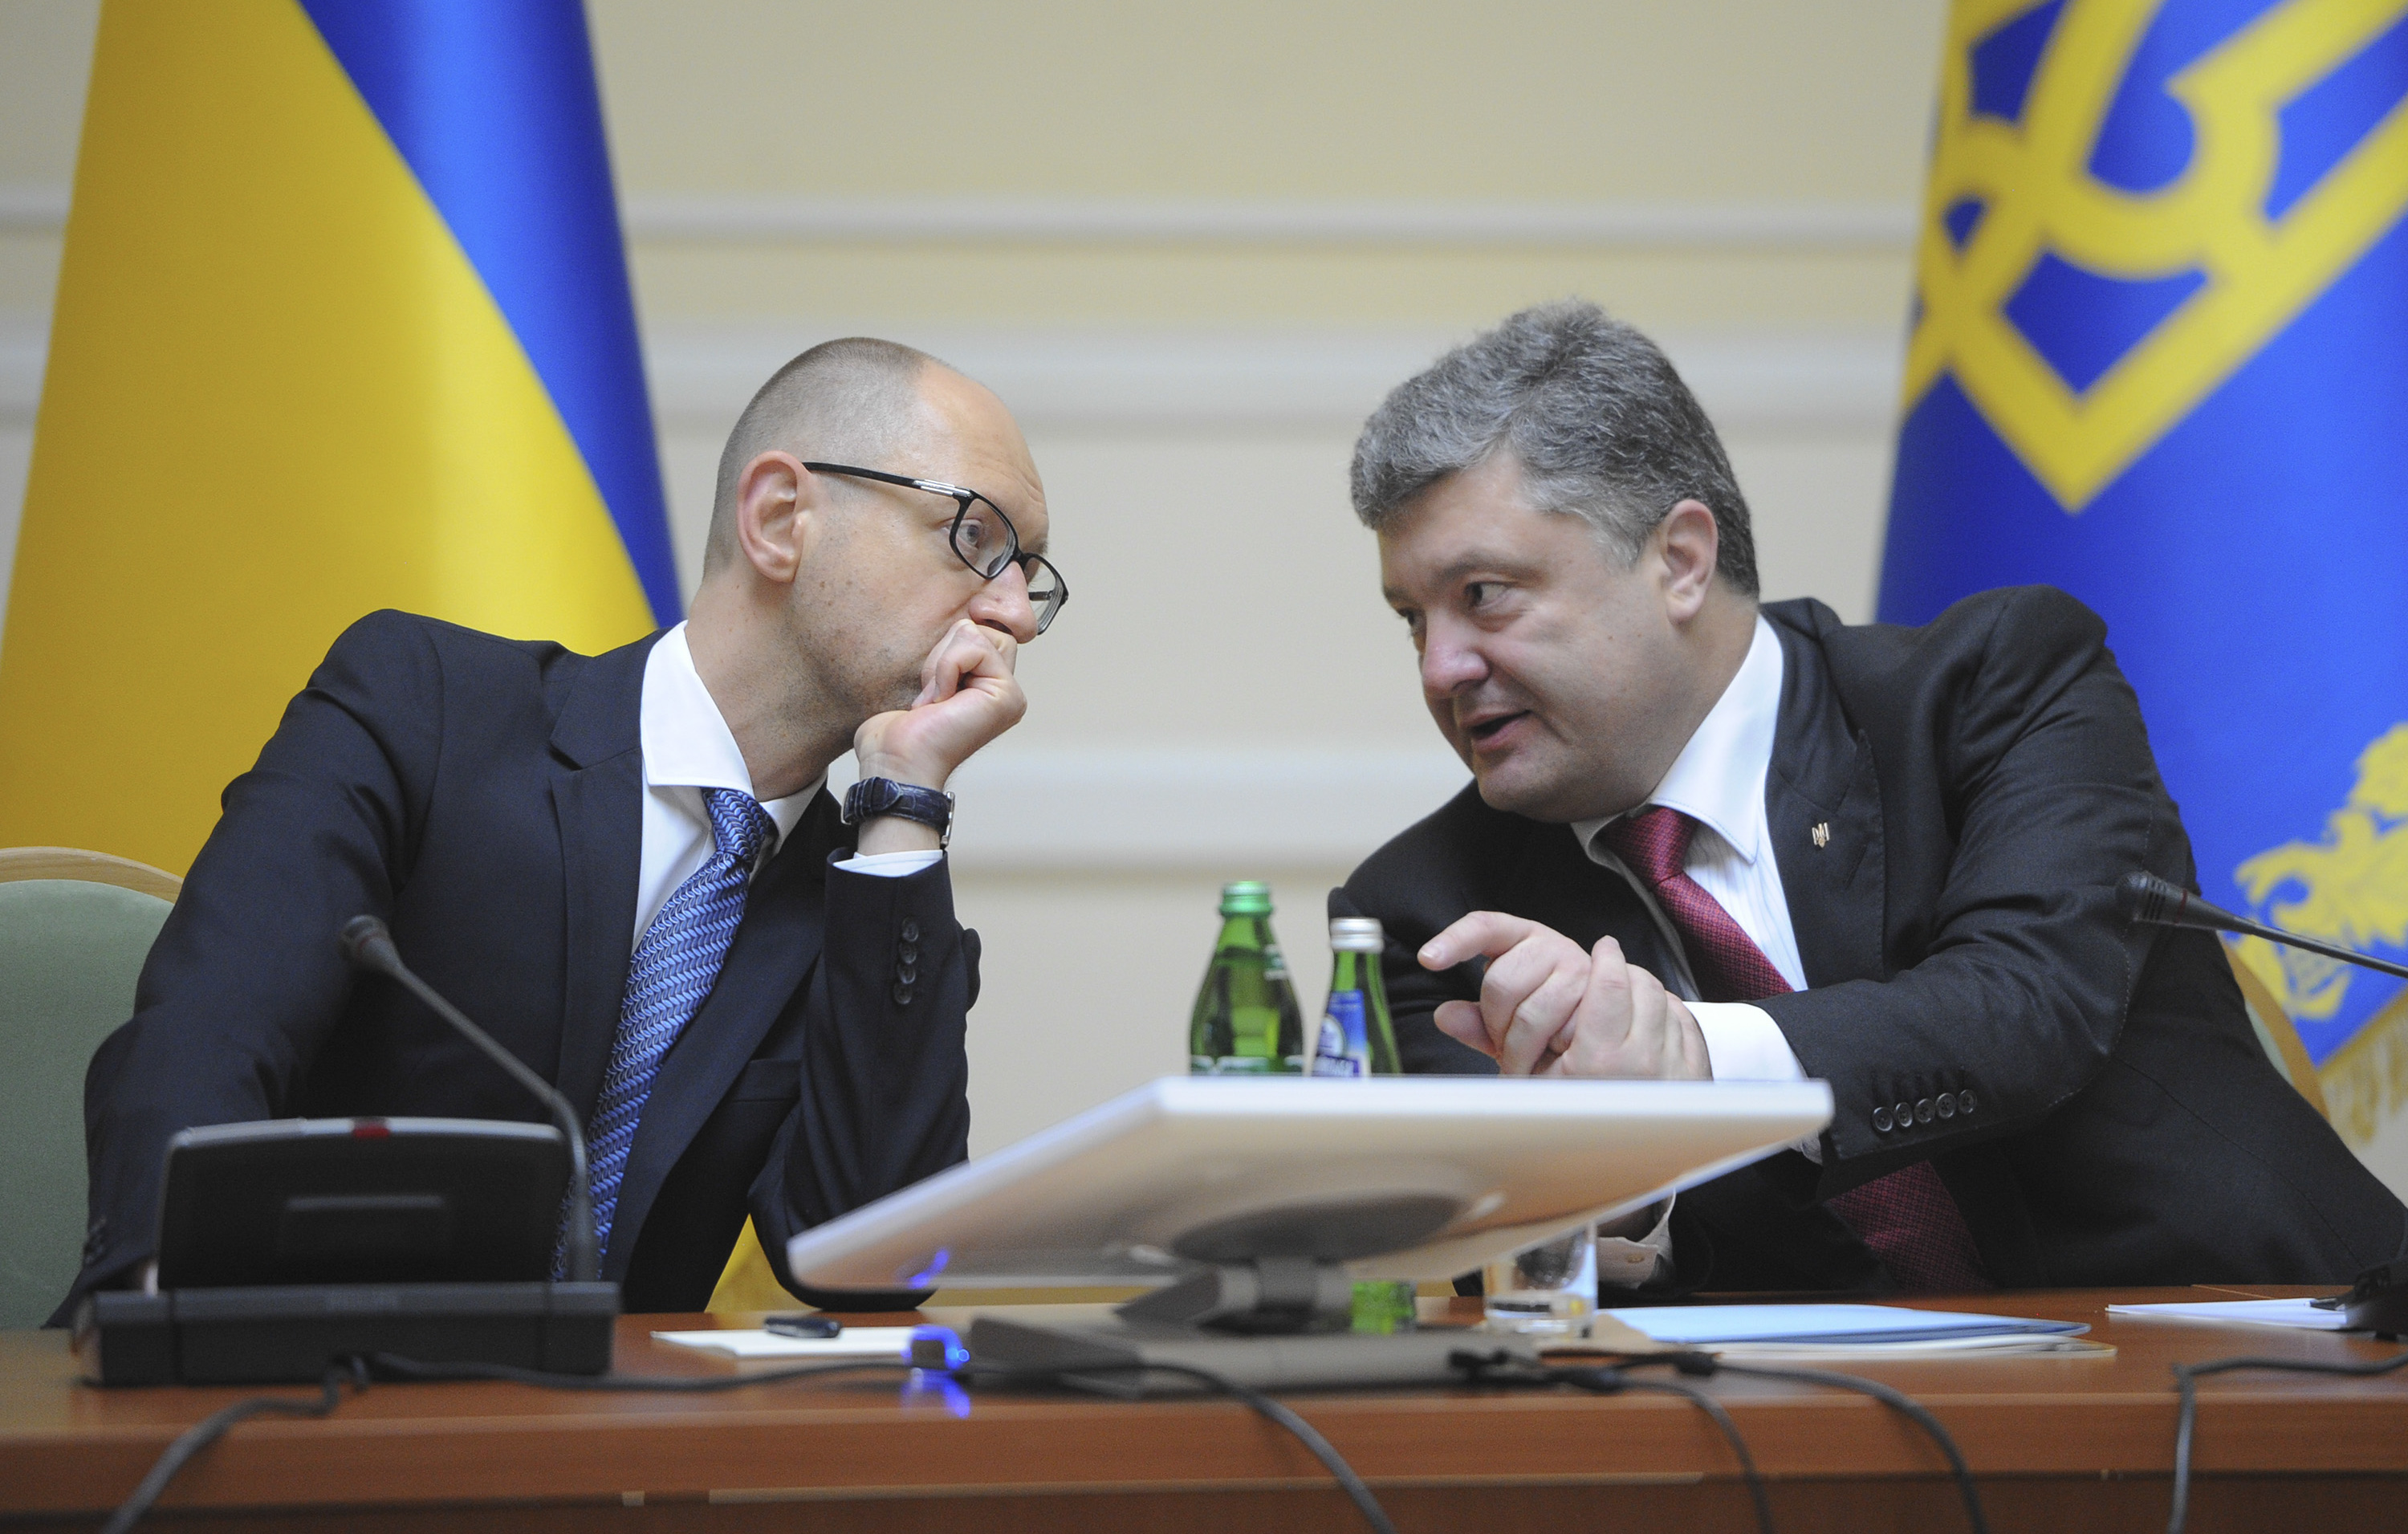 Ukrainian President Petro Poroshenko, right, talks with Prime Minister Arseniy Yatsenyuk in Kiev, Ukraine,  on Sept. 10, 2014. Poroshenko promised on that day to introduce to parliament as early as next week a bill that would offer greater autonomy to rebellious regions in the pro-Russia eastern regions, where separatists have been battling government troops for almost five months